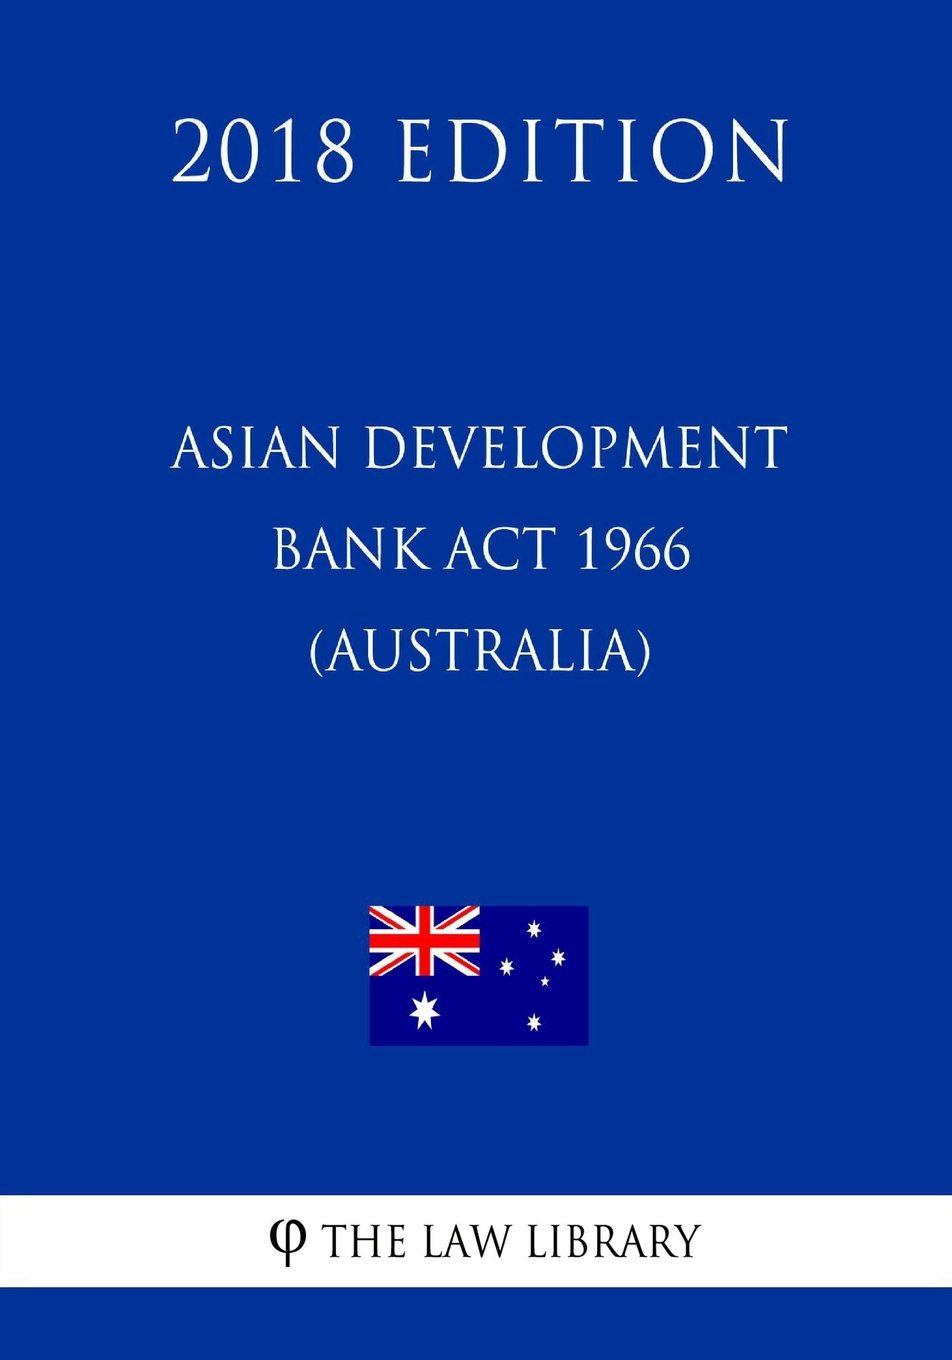 Download Asian Development Bank Act 1966 (Australia) (2018 Edition) ebook